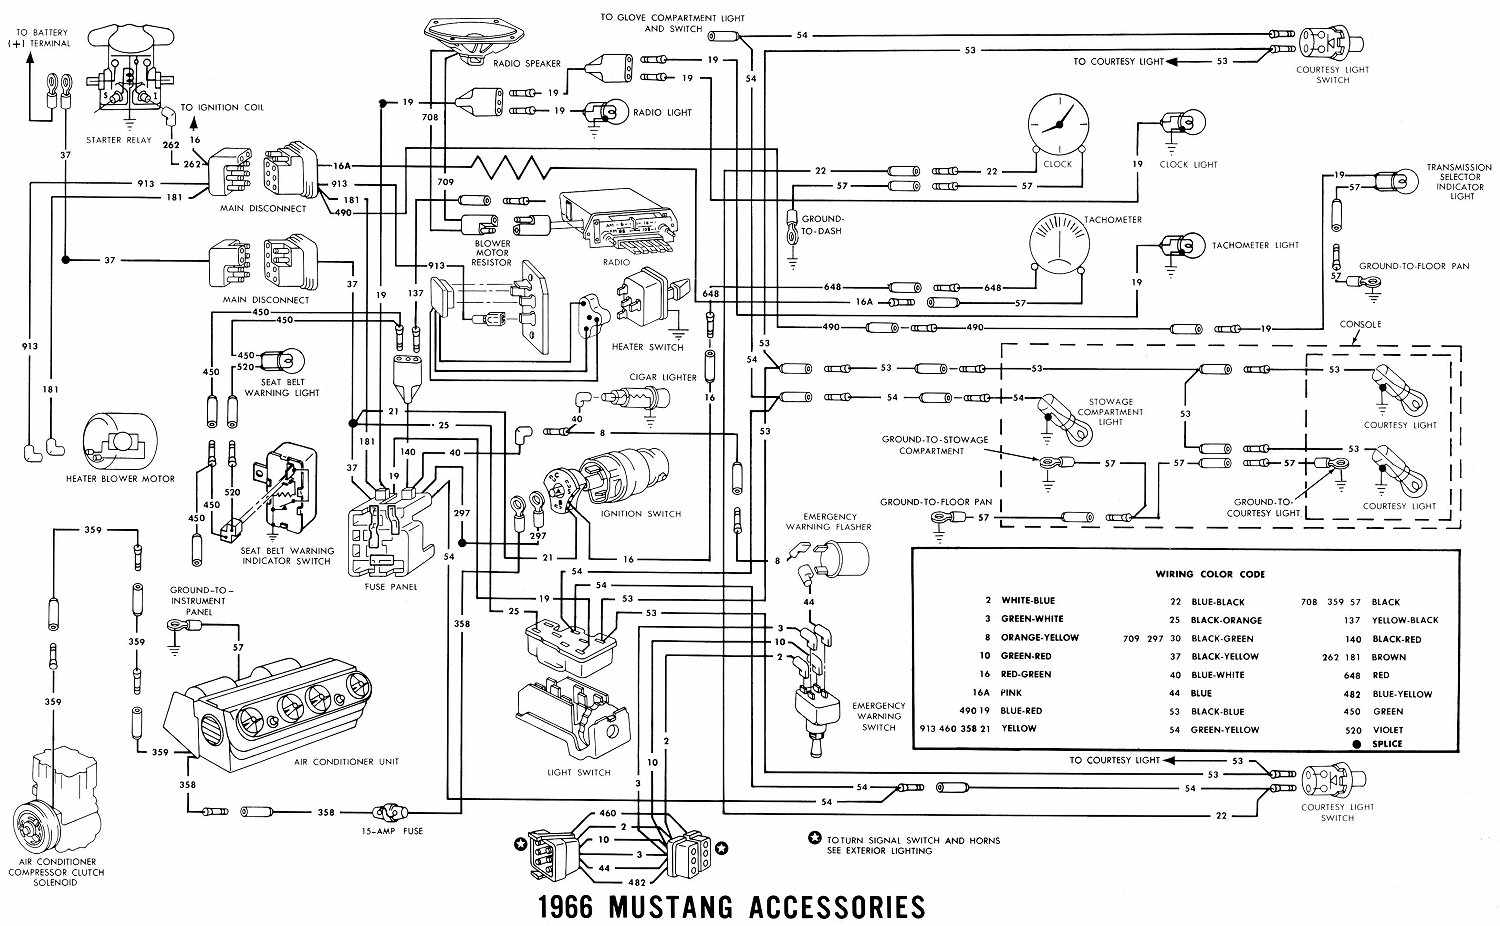 1966 ford mustang accessories electrical wiring diagrams basic headlight wiring diagram buick basic headlight wiring diagram automotive